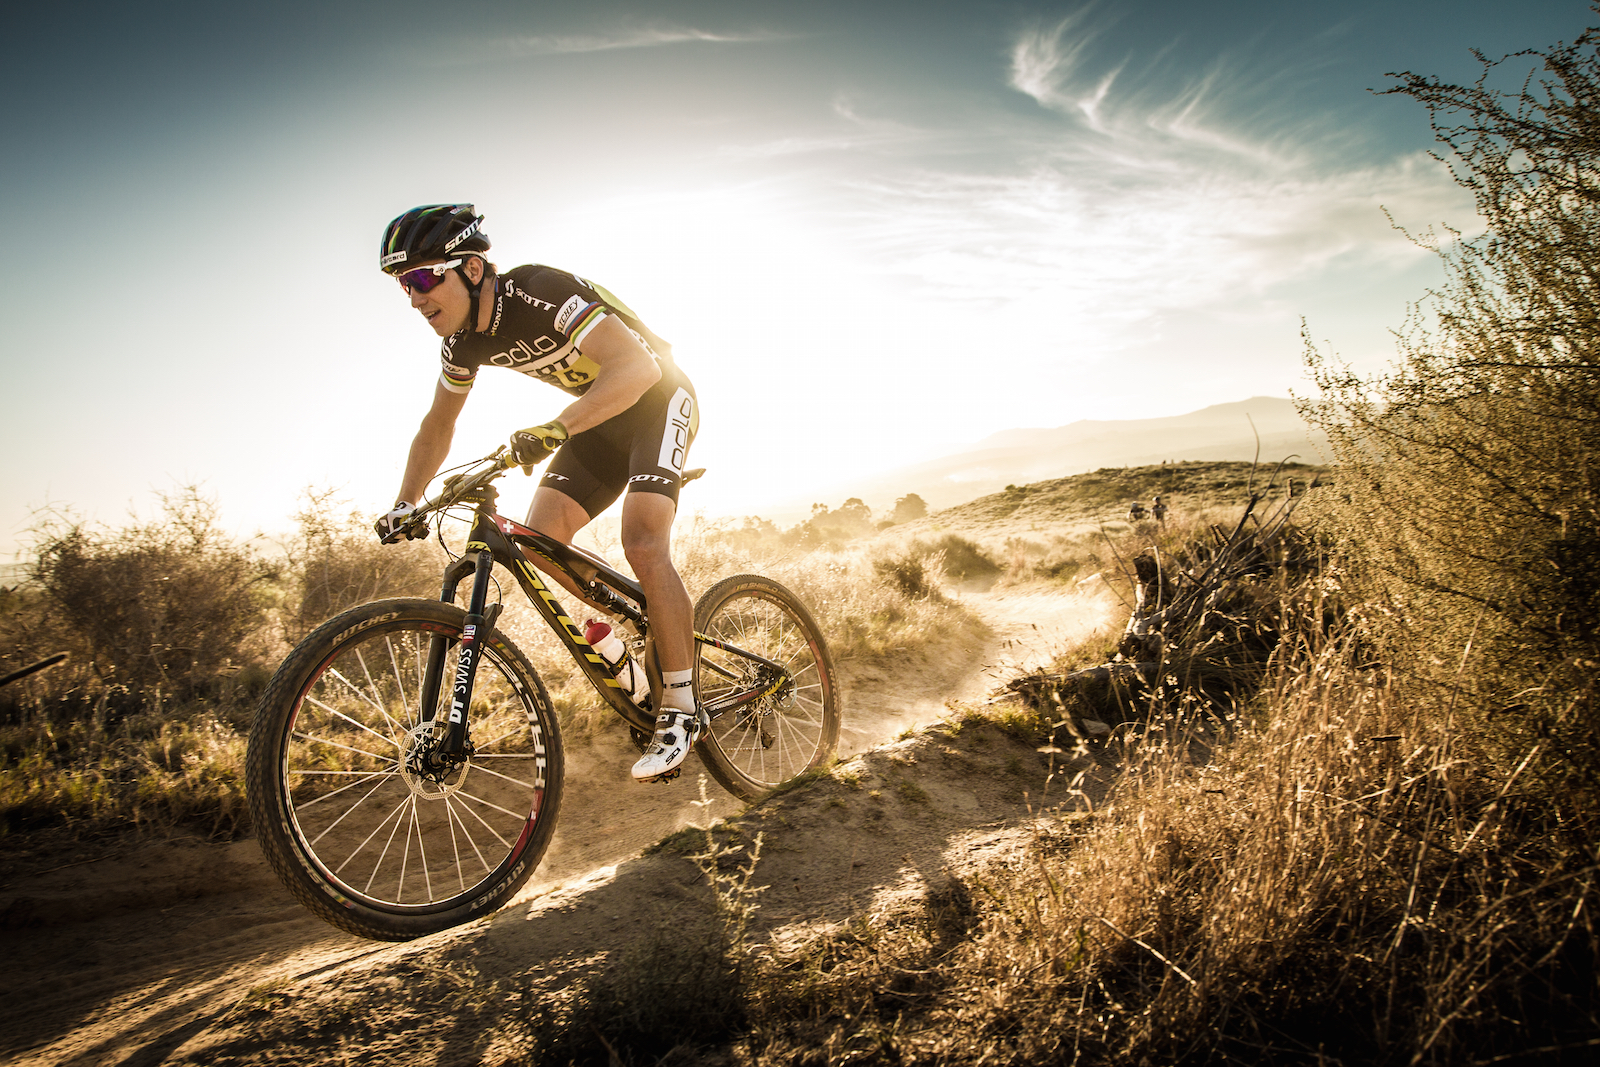 5 March 2015 - Scott-Odlo shoot near Stellenbosch with Nino Schurter, Michiel van der Heijden, Jenny Rissveds & Thomas Frischknecht. Photo by Gary Perkin